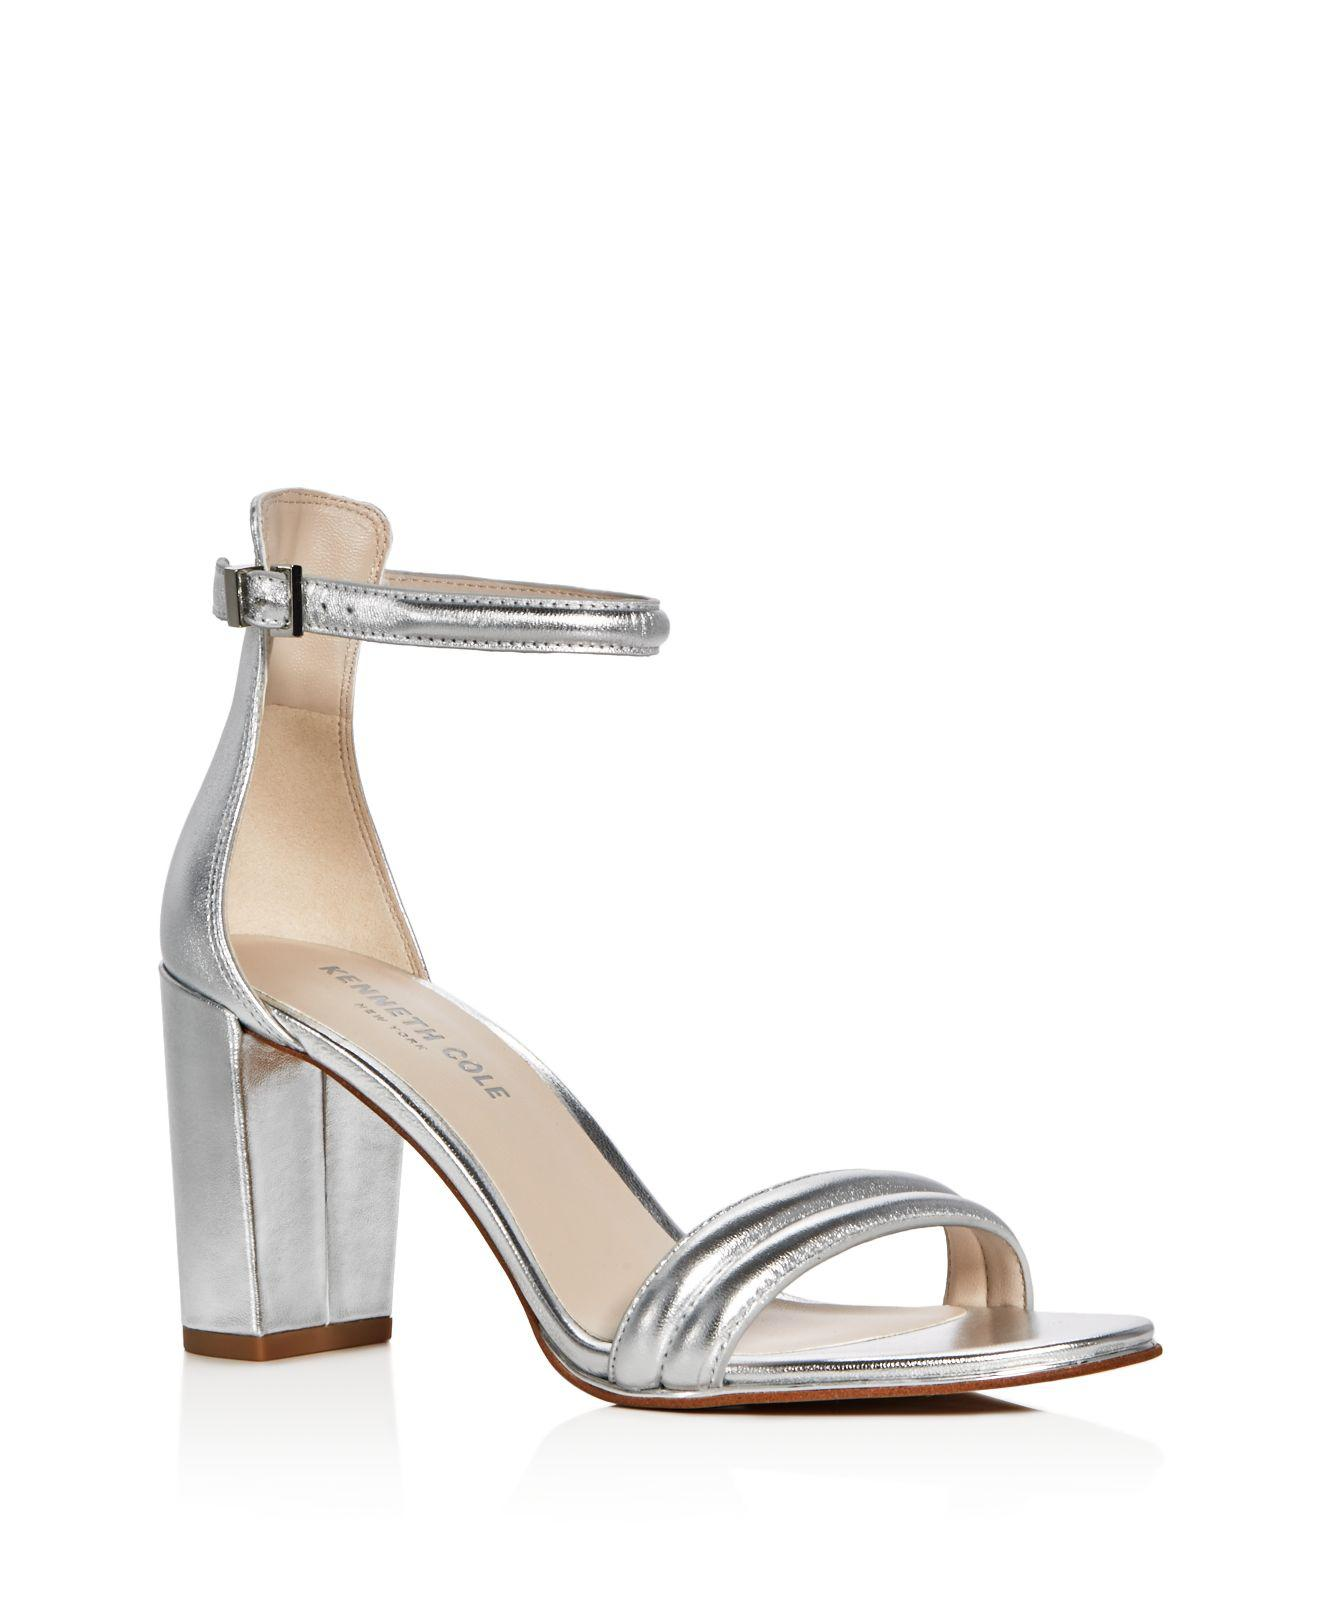 Lex Ankle Strap Heel Kenneth Cole Discount Codes Really Cheap Cheap 2018 Newest 3igjOtt